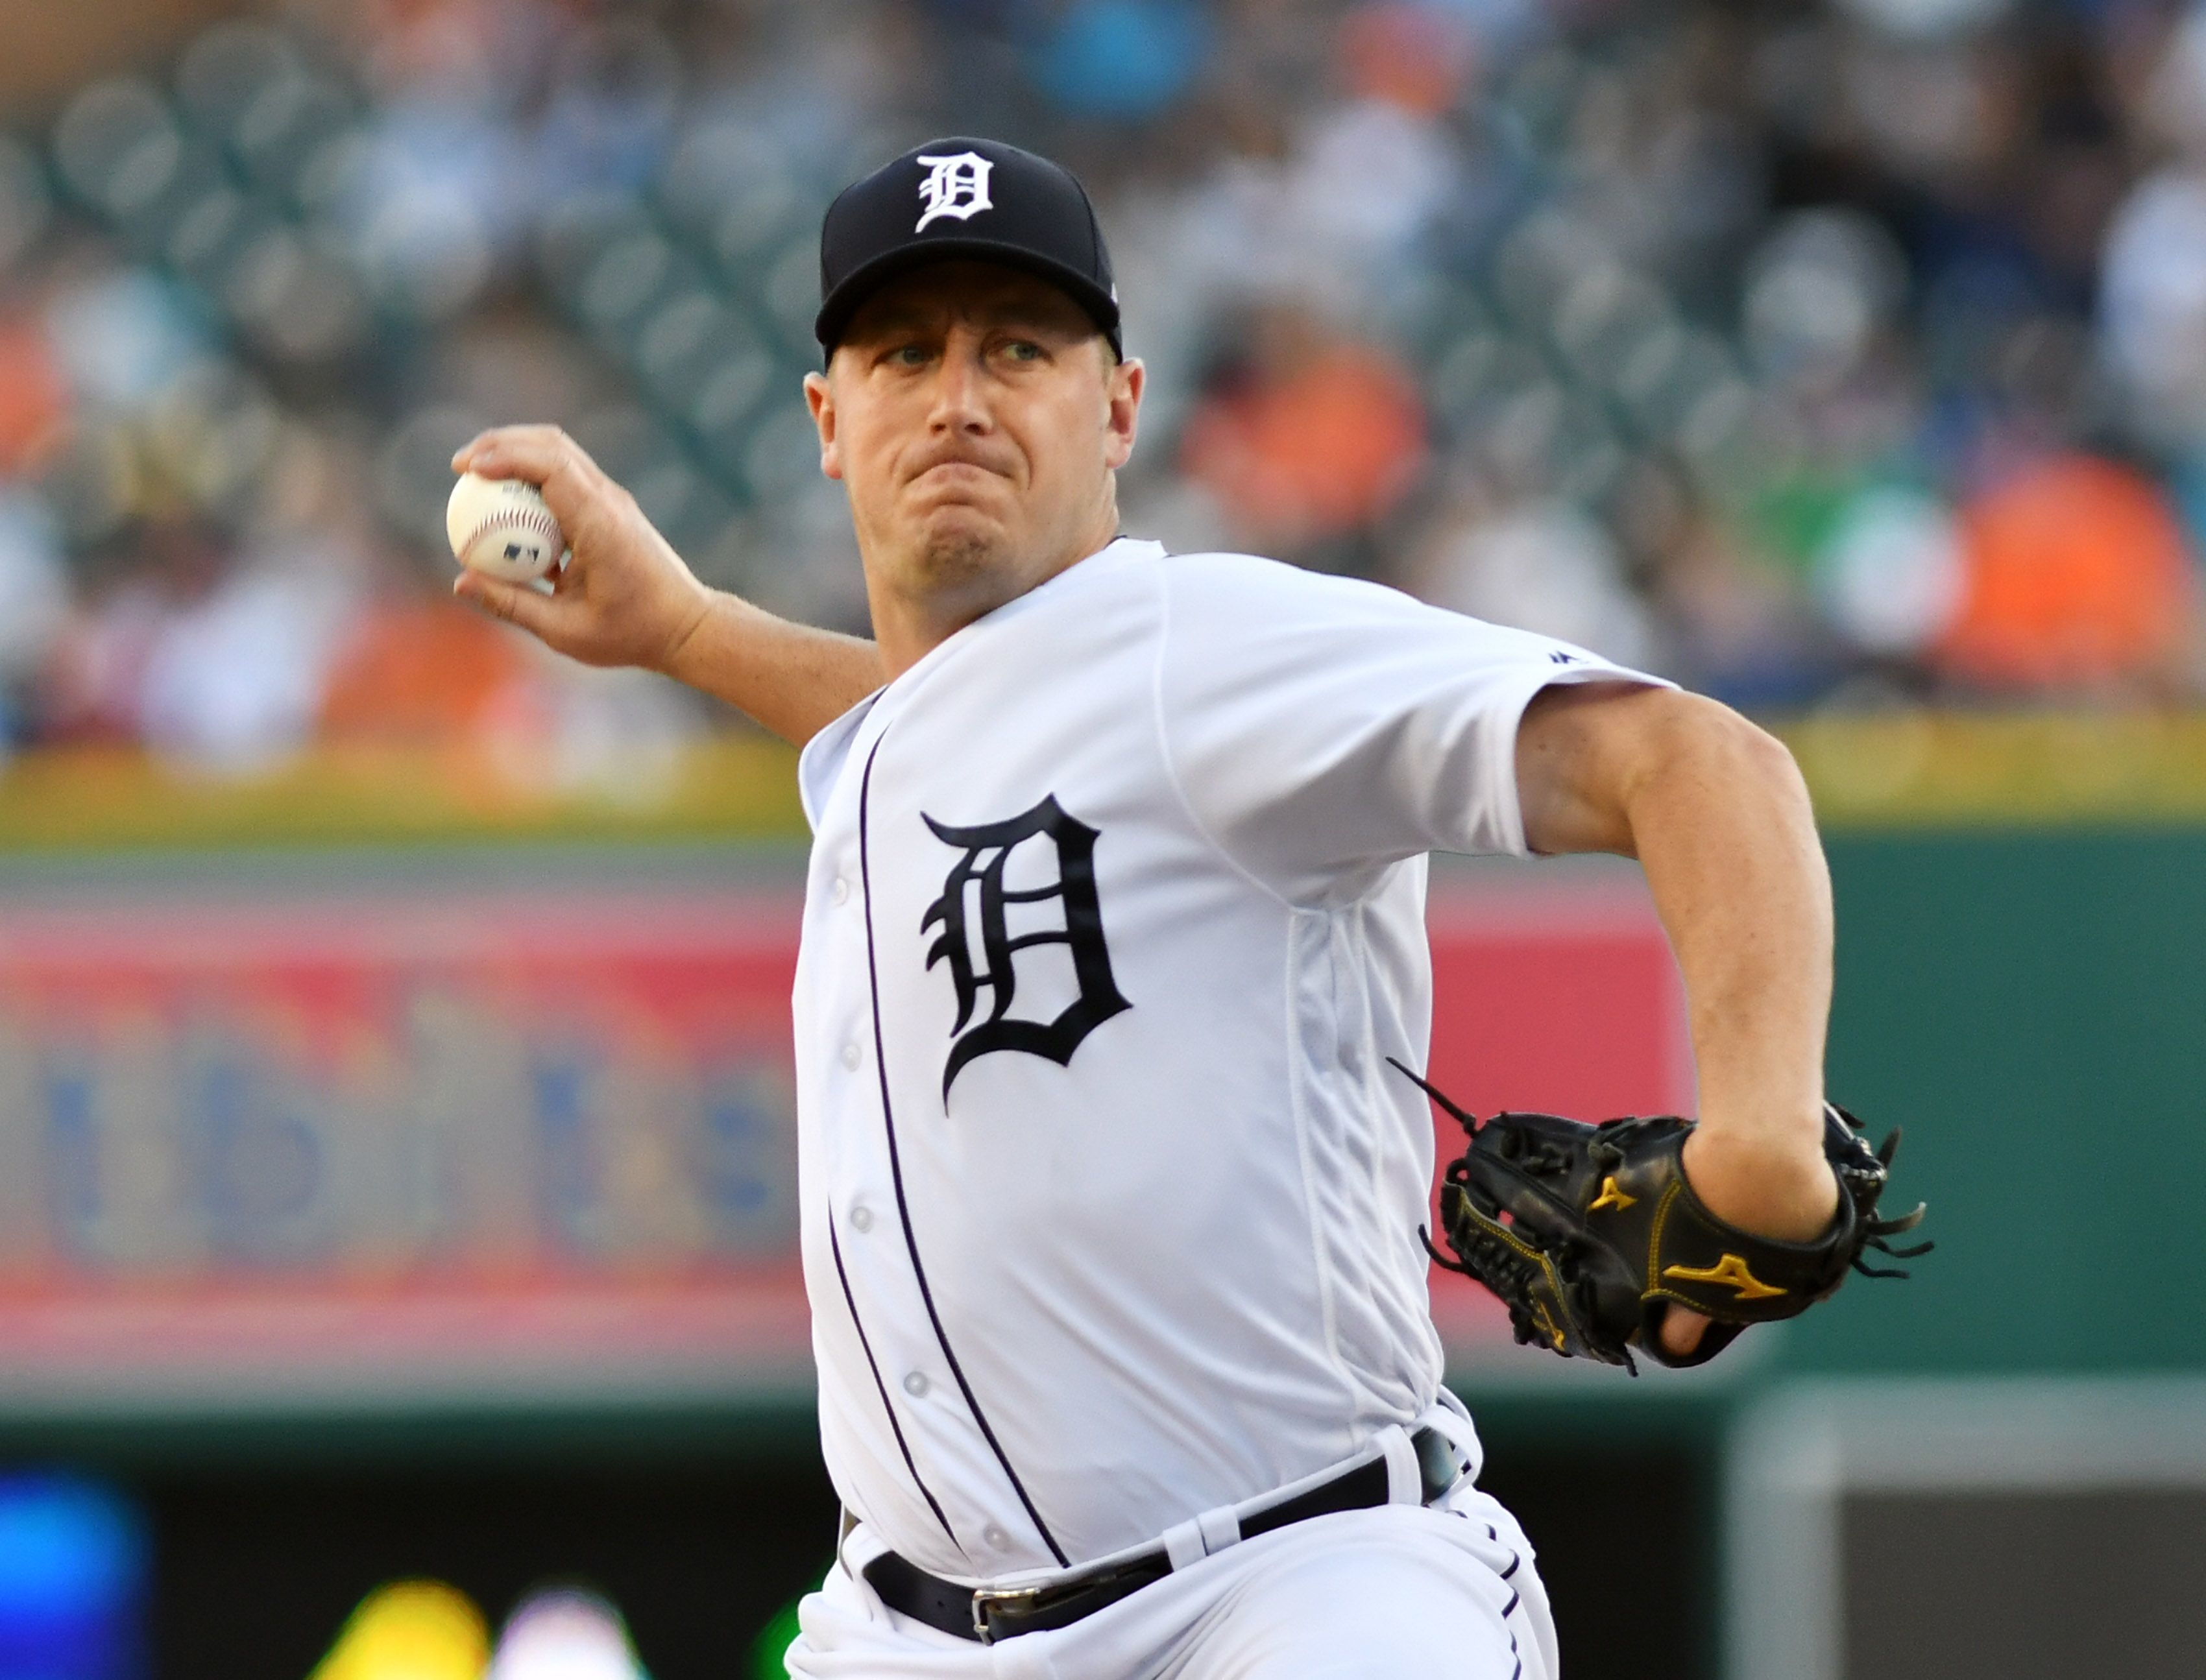 Tigers pitcher Jordan Zimmermann and his wife are donating $500,000 to the baseball program at the University of Wisconsin-Stevens Point, where both were student athletes.